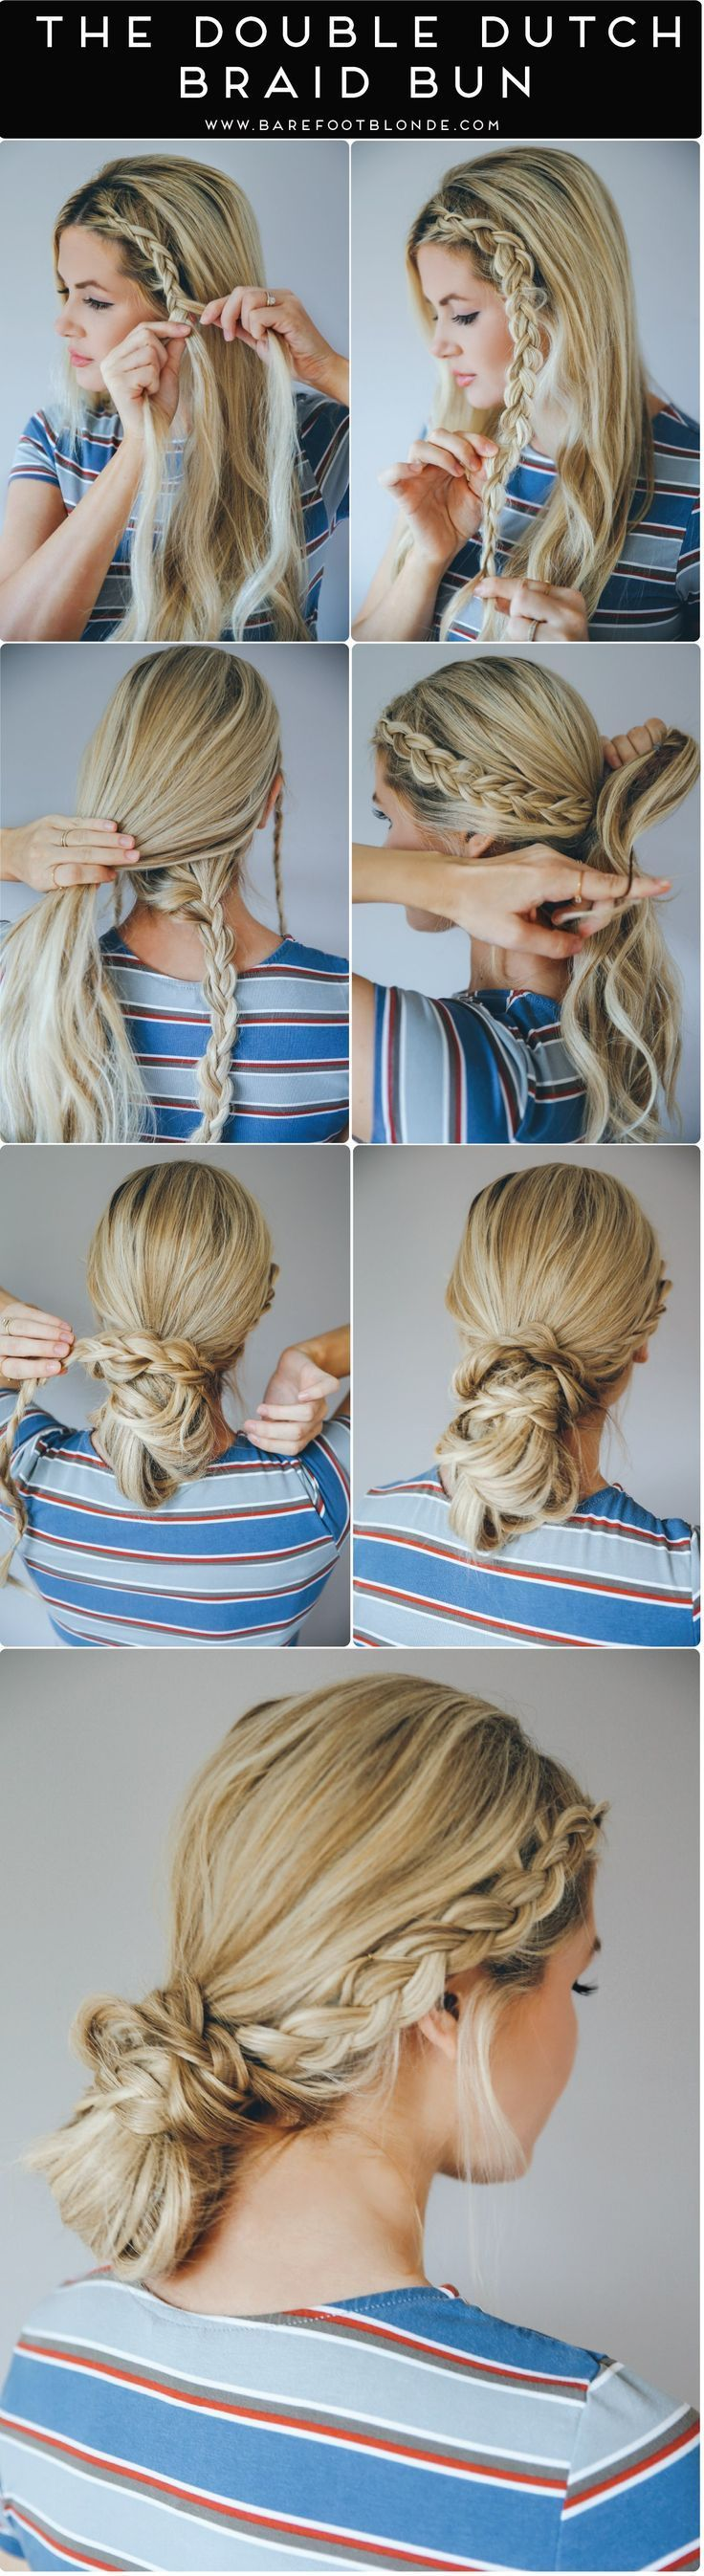 118 best Hair Tips & Tutorials images on Pinterest